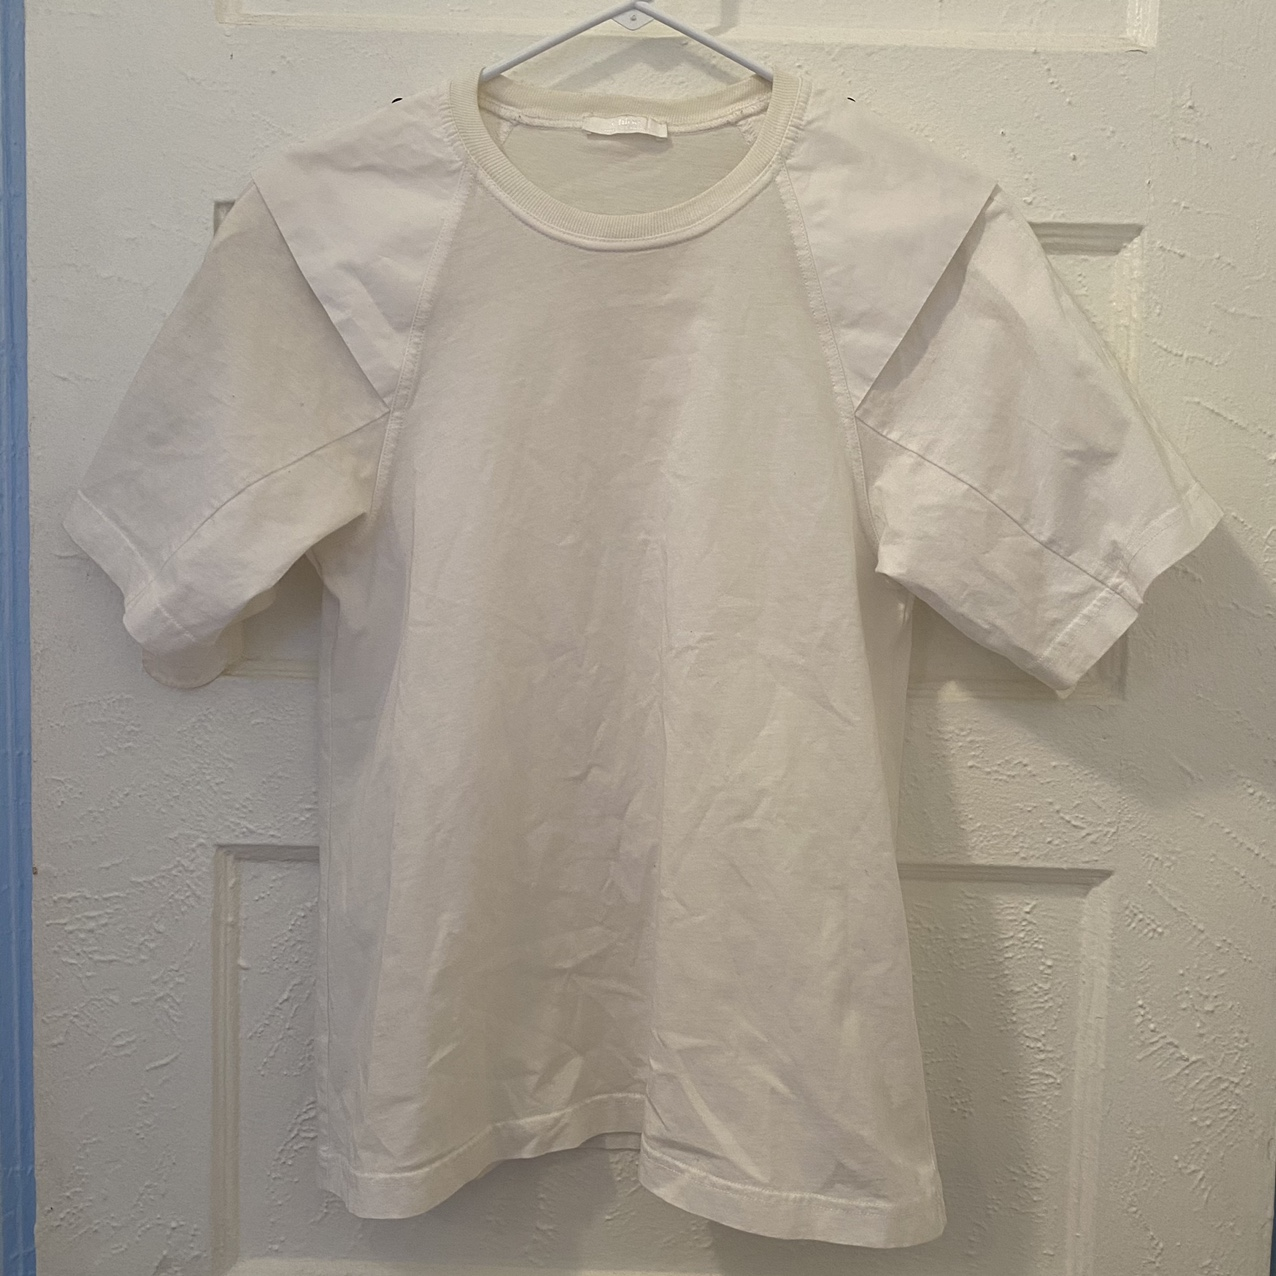 Product Image 1 - Chloé White Wardrobe t-shirt with